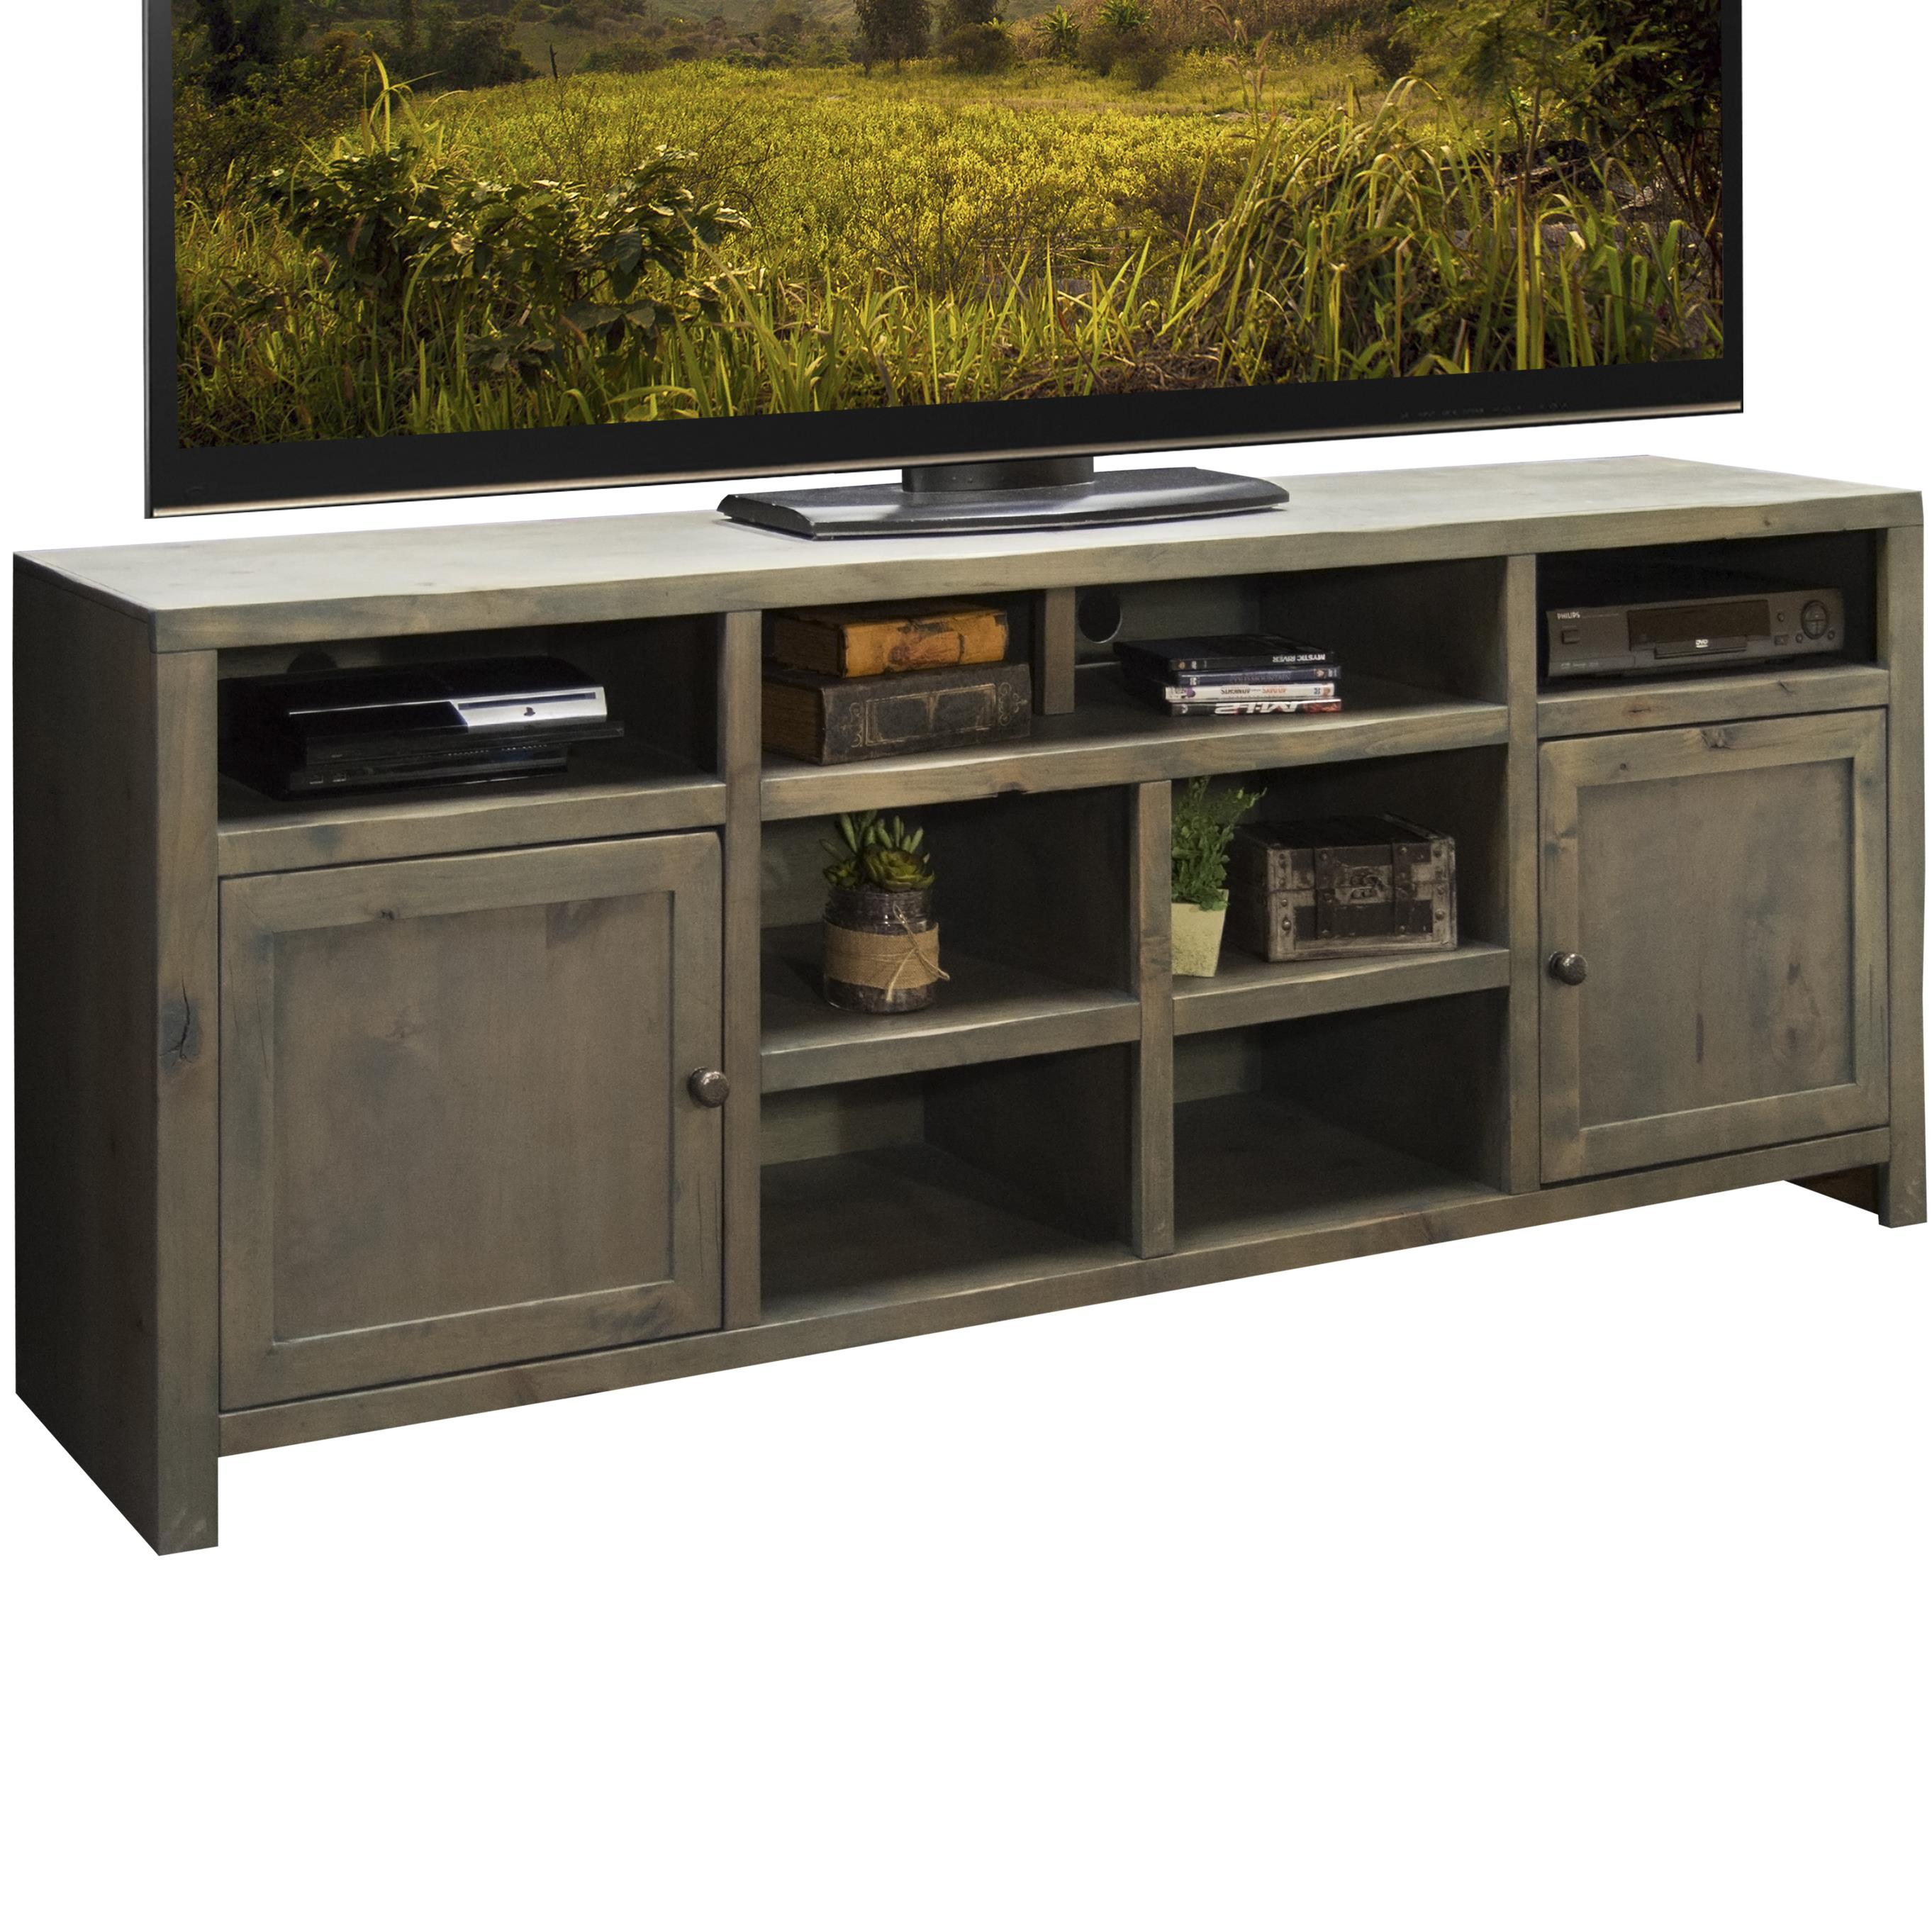 "Legends Furniture Joshua Creek 84"" Super Console - Item Number: JC1284-BNW"